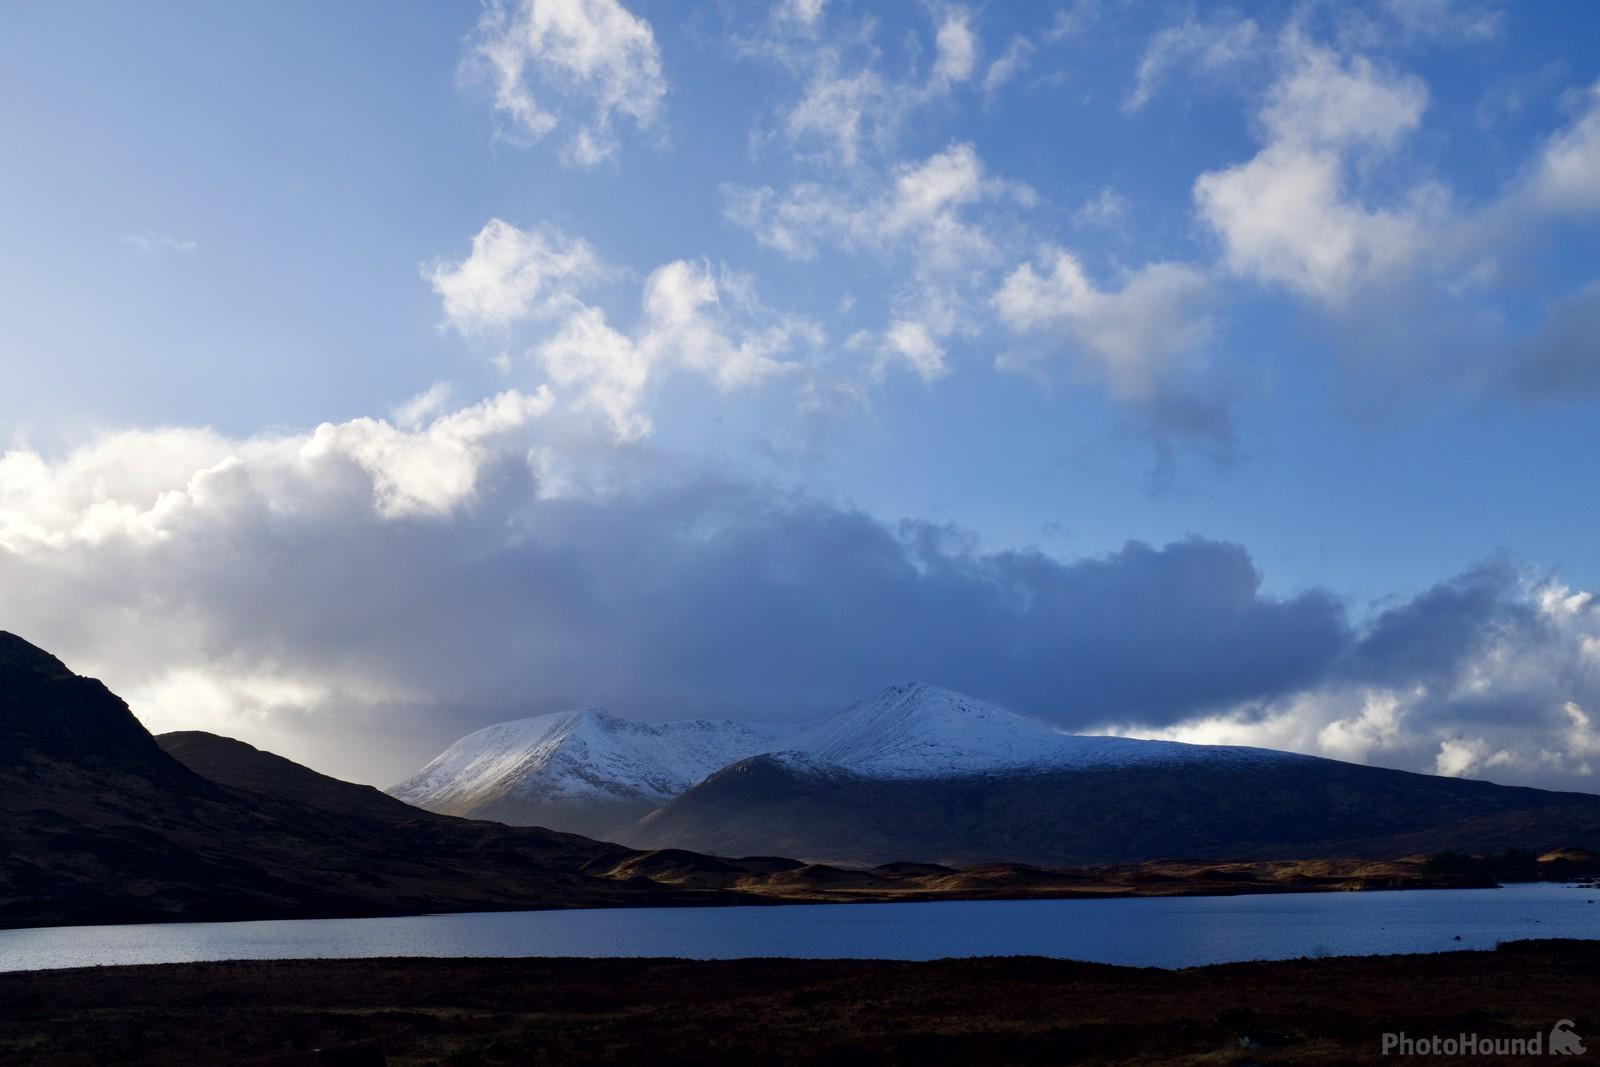 A cold late winter shot over Rannoch Moor